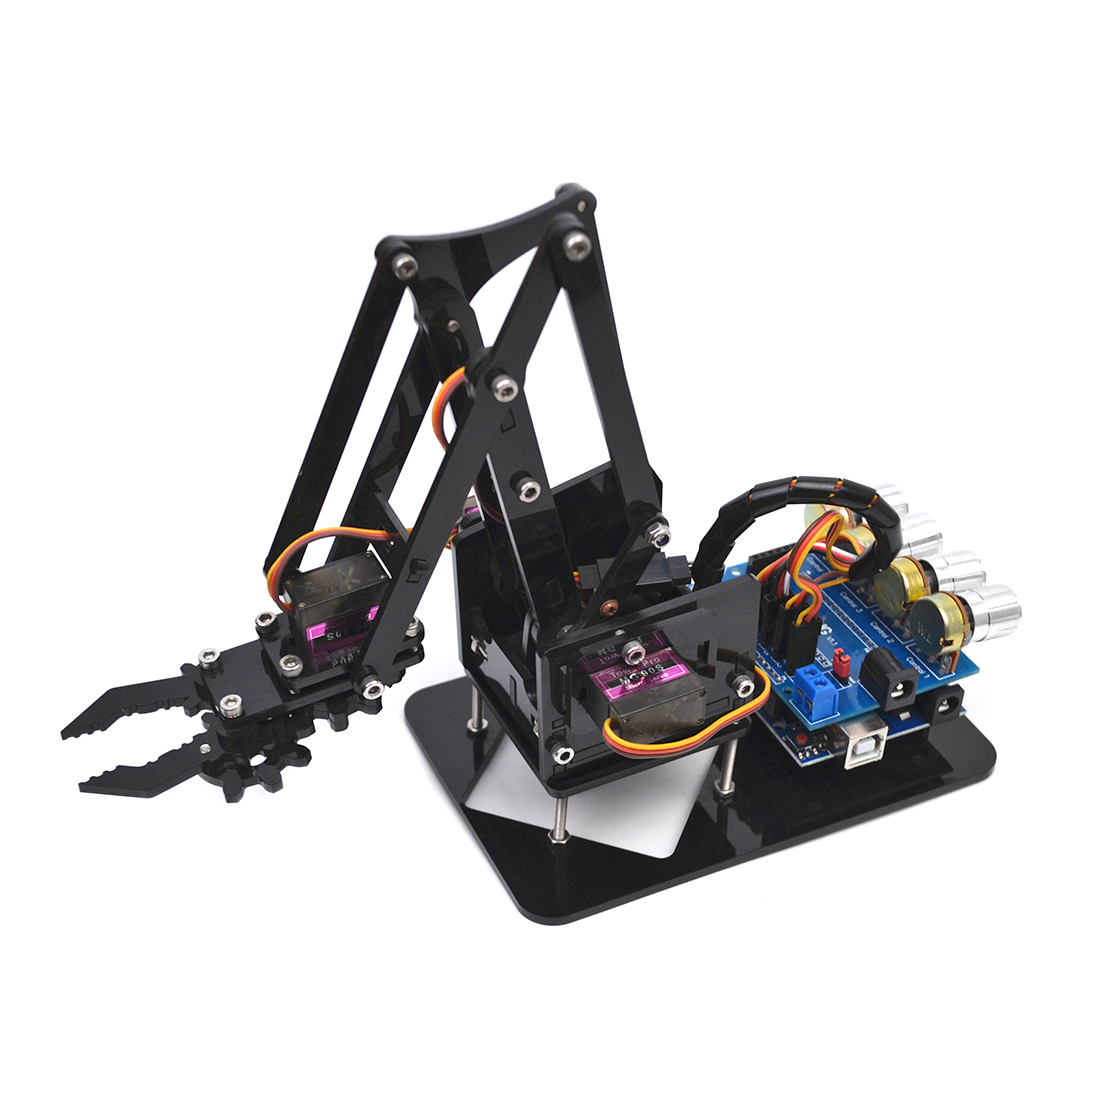 Hot Sale DIY Acrylic Robot Arm Robot Claw Arduino Kit 4DOF Mechanical Grab Manipulator Model Educational Toy Gift For Kid Adult